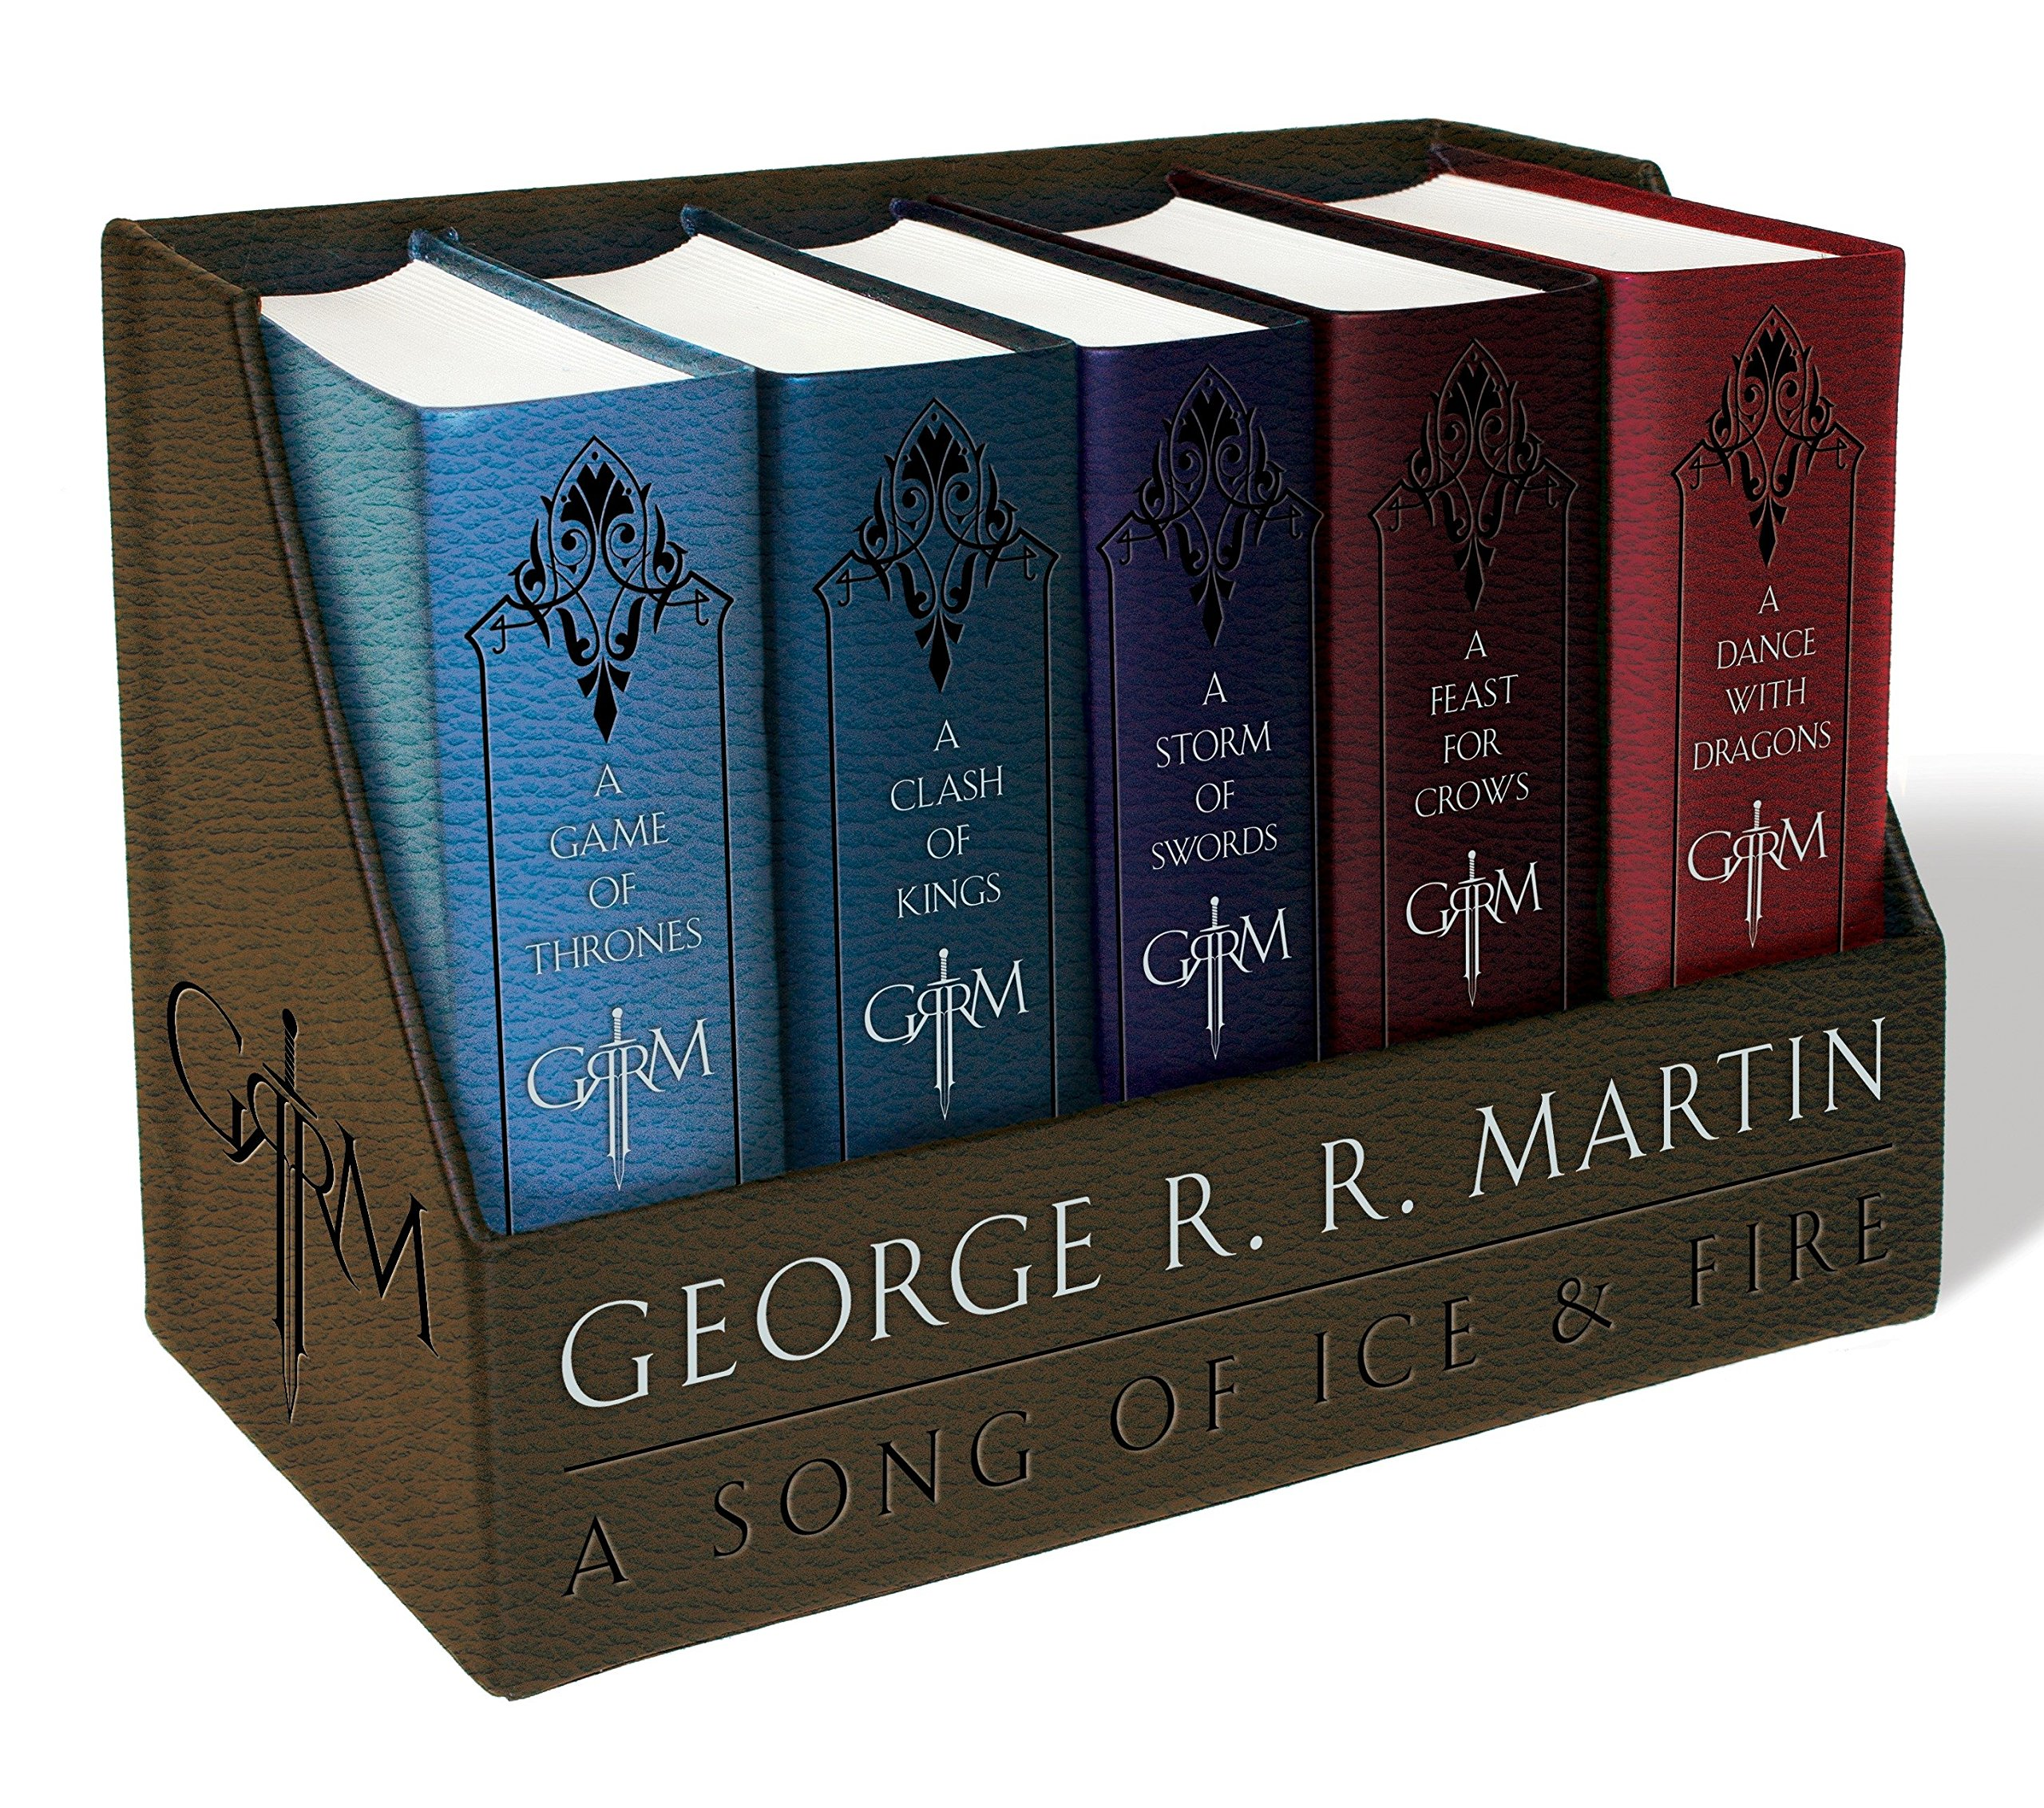 A Game of Thrones / A Clash of Kings / A Storm of Swords / A Feast for Crows / A Dance with Dragons (Song of Ice and Fire Series) (A Song of Ice and Fire) by Bantam